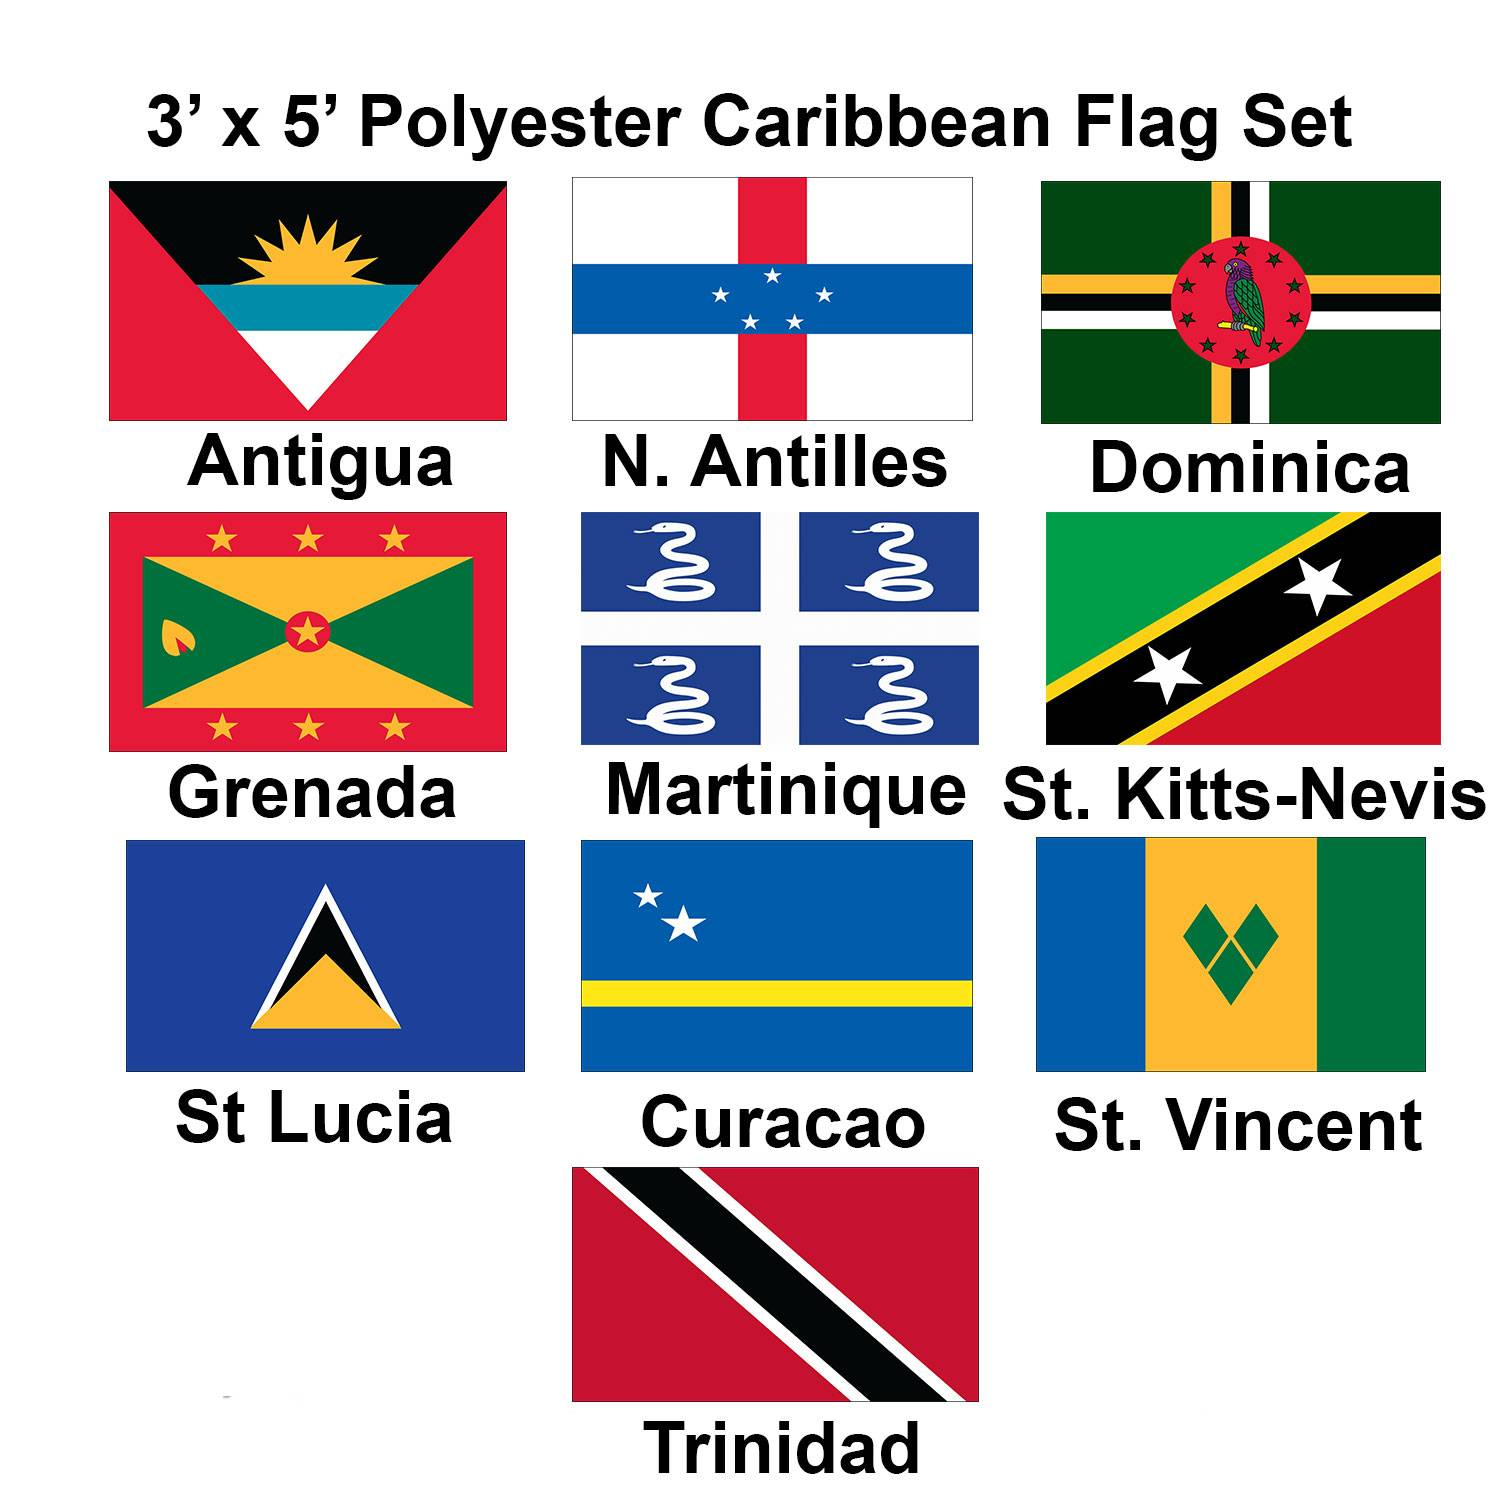 Caribbean flags for sale by 1-800 Flags